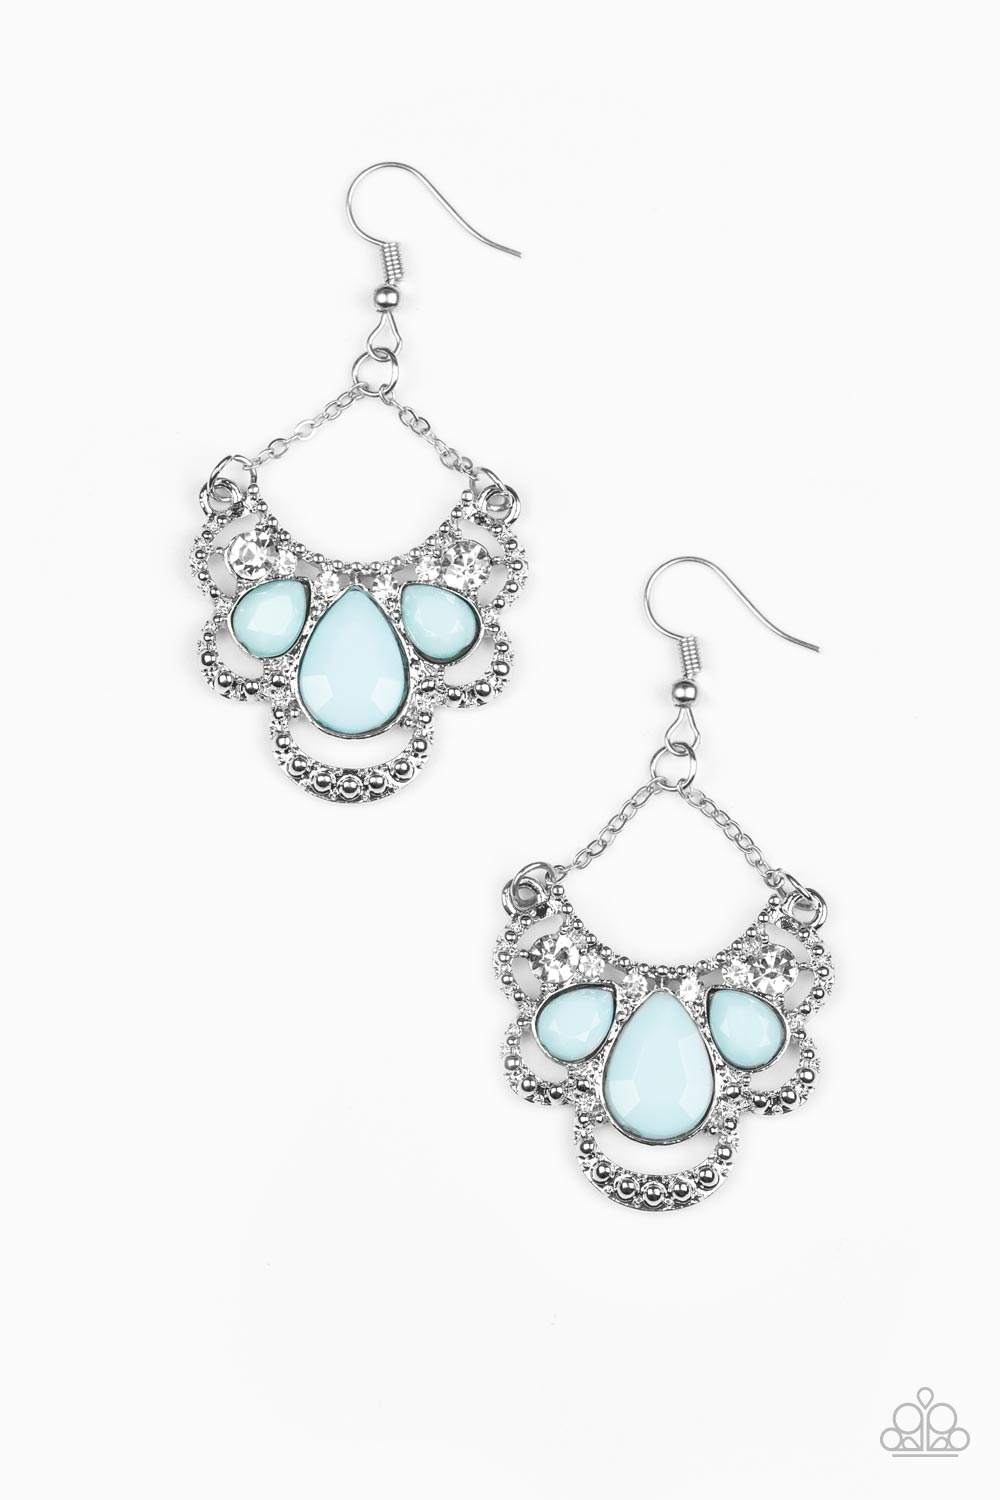 Paparazzi Accessories - Caribbean Royalty - Blue Earrings - JMJ Jewelry Collection